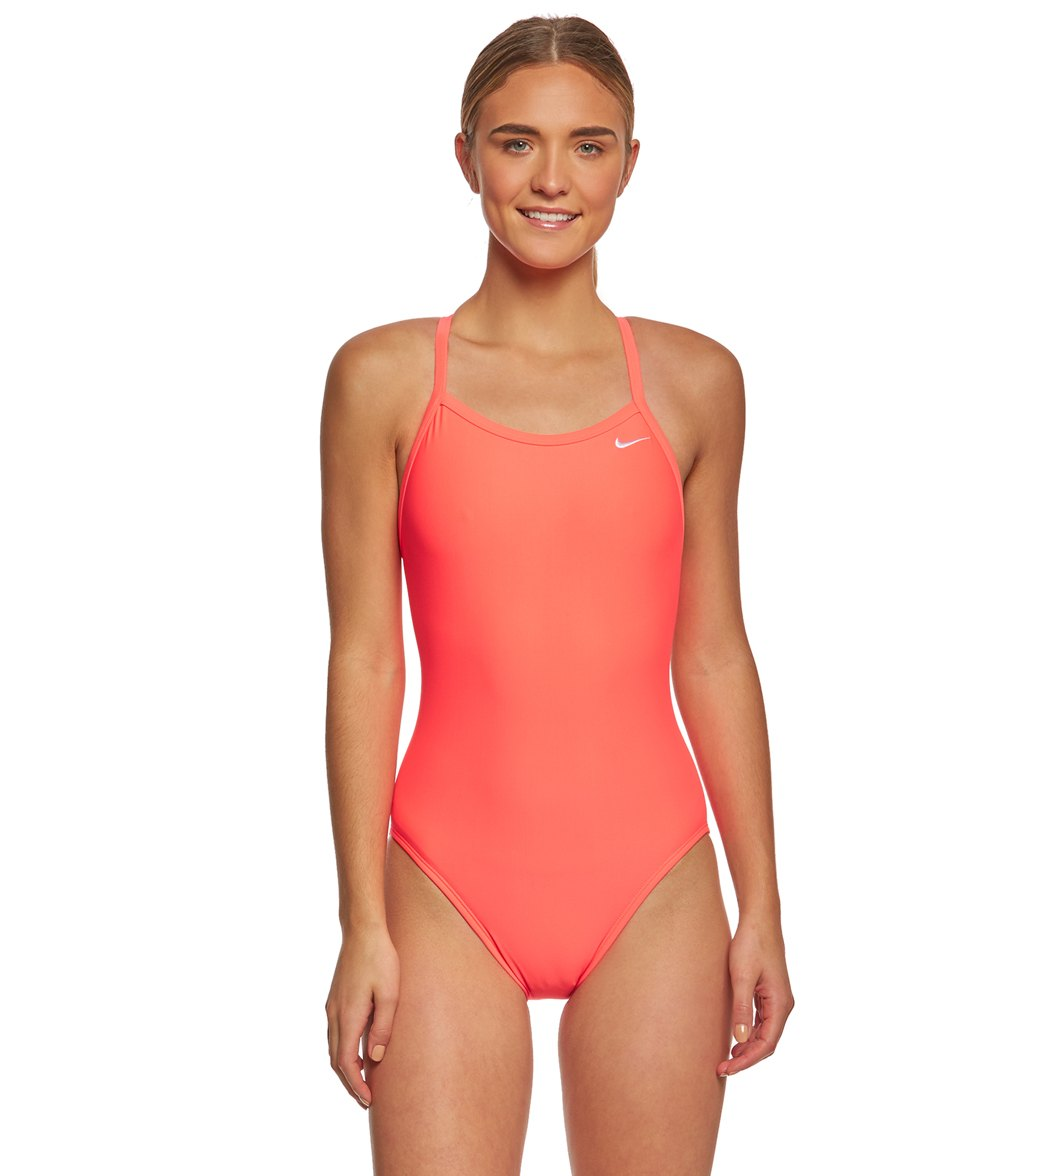 f5412c2b3da Nike Women's Solid Racerback One Piece Swimsuit at SwimOutlet.com - Free  Shipping